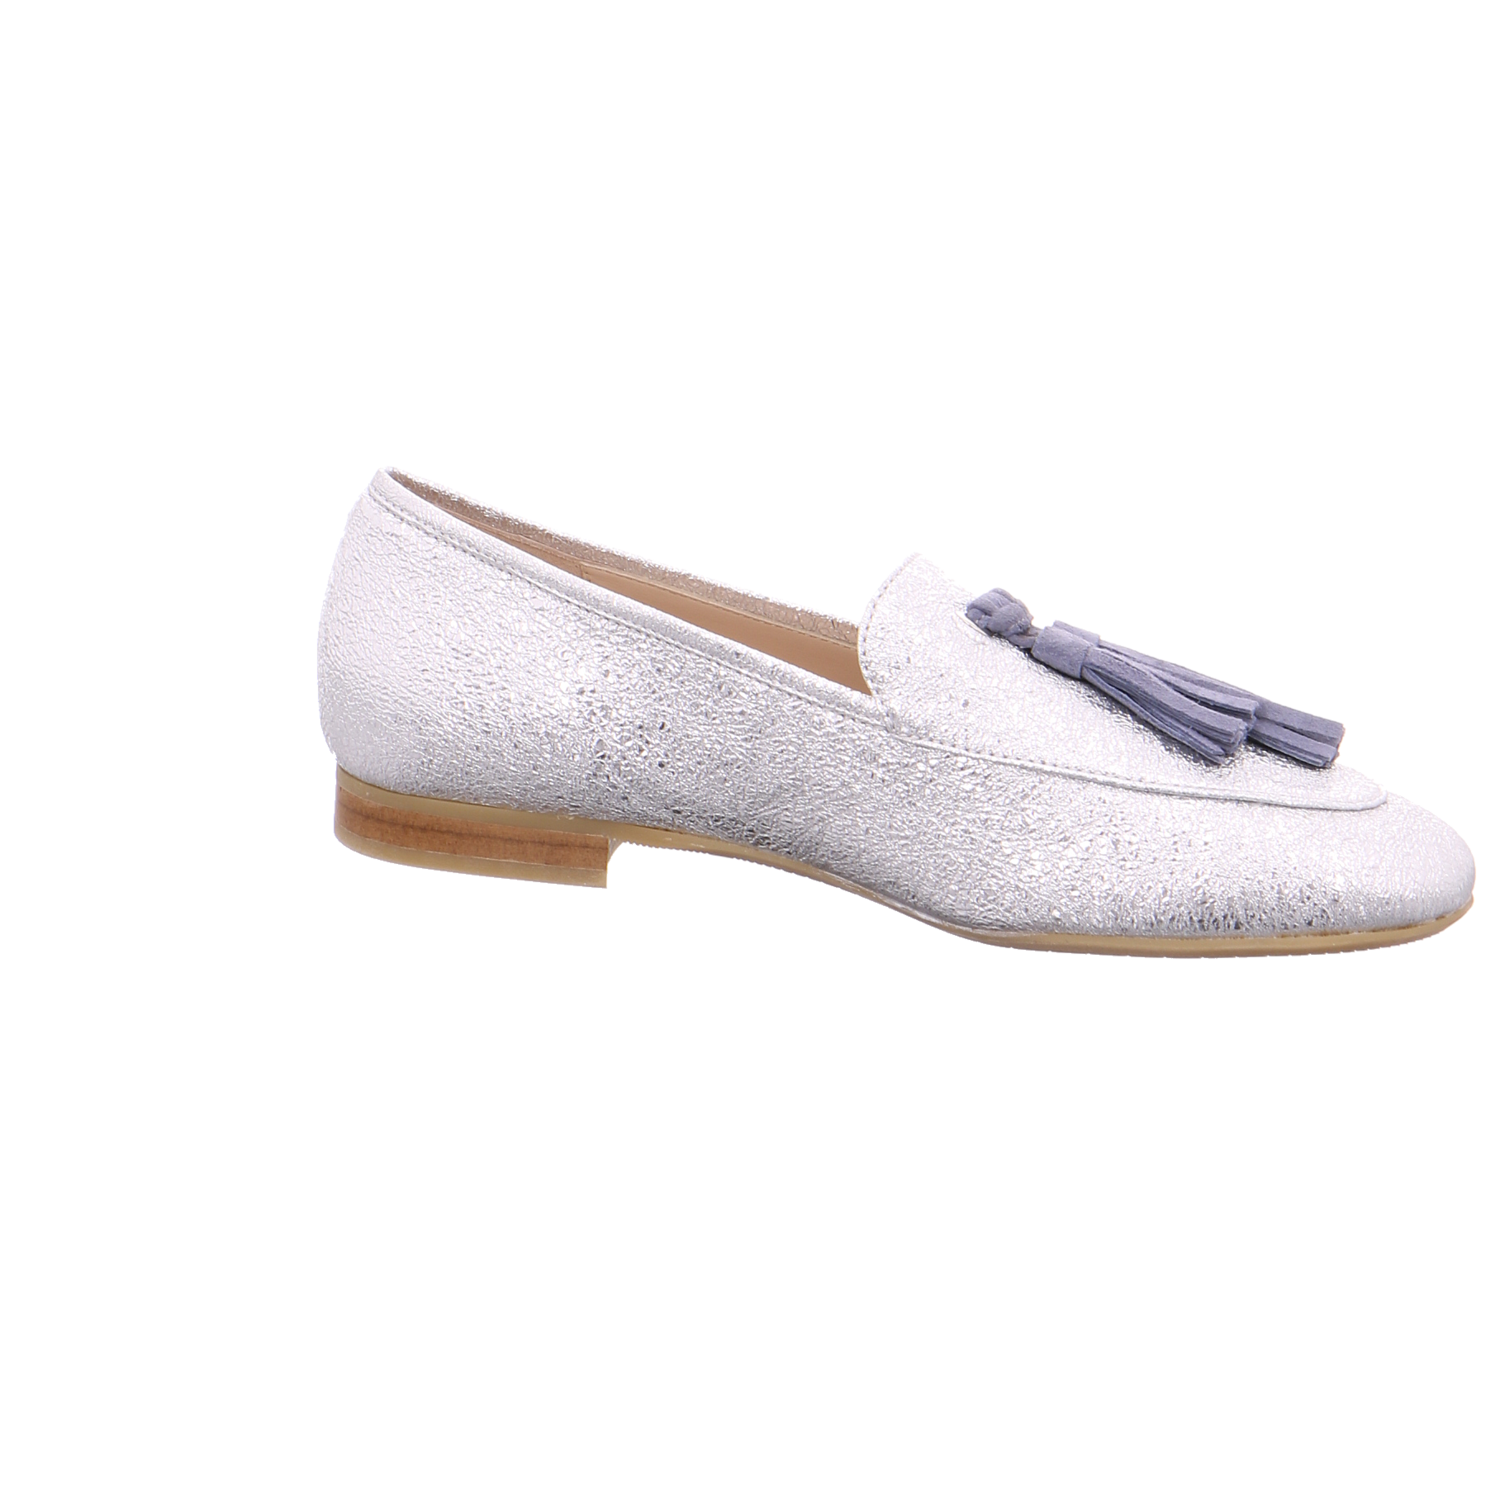 NEU NEU NEU Damenschuhe Carolina Damen Slipper 33135159 silber 293847 add8b7